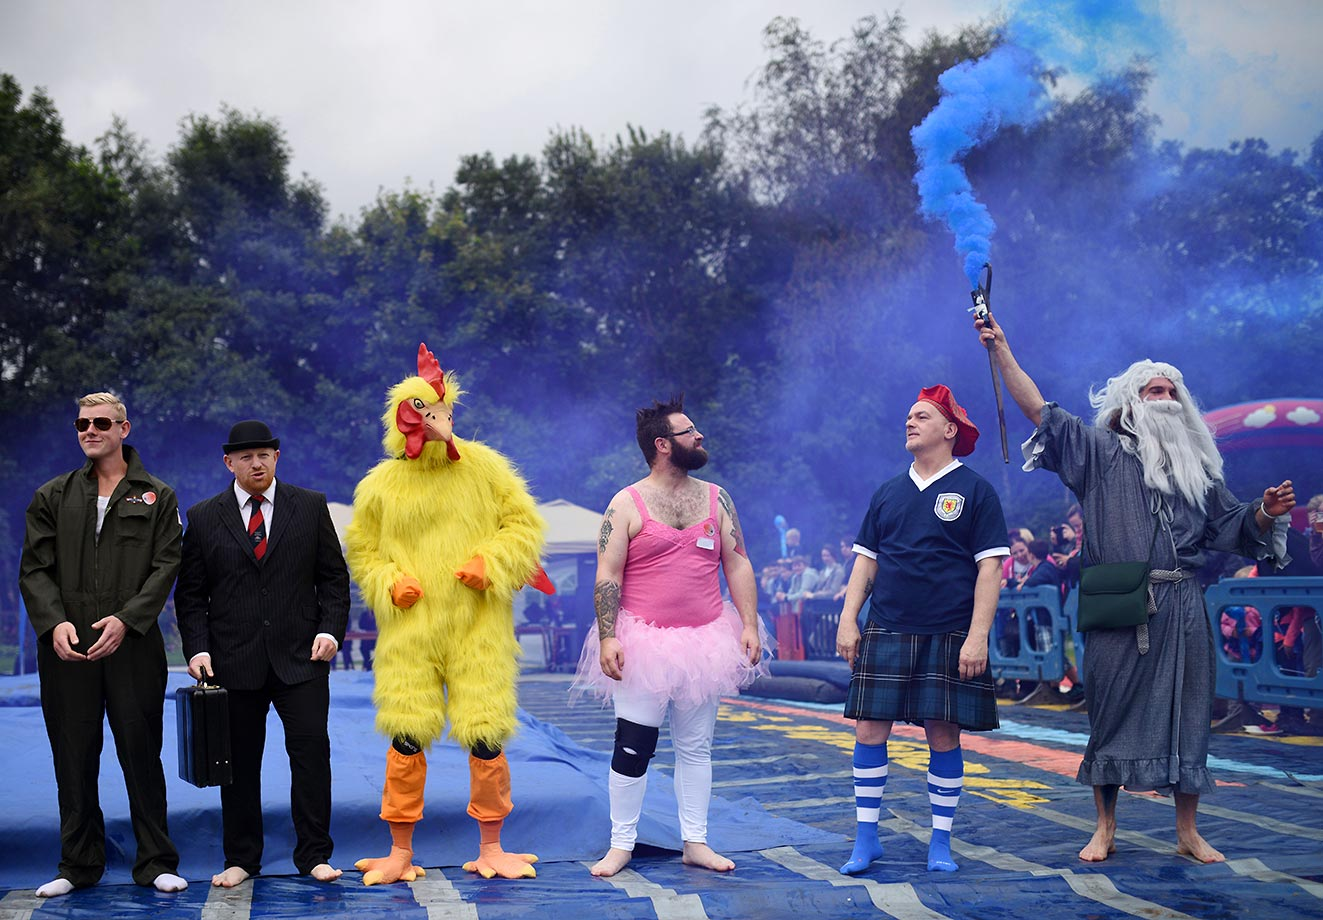 Competitors line up before the start of the 8th annual World Gravy Wrestling Championships.